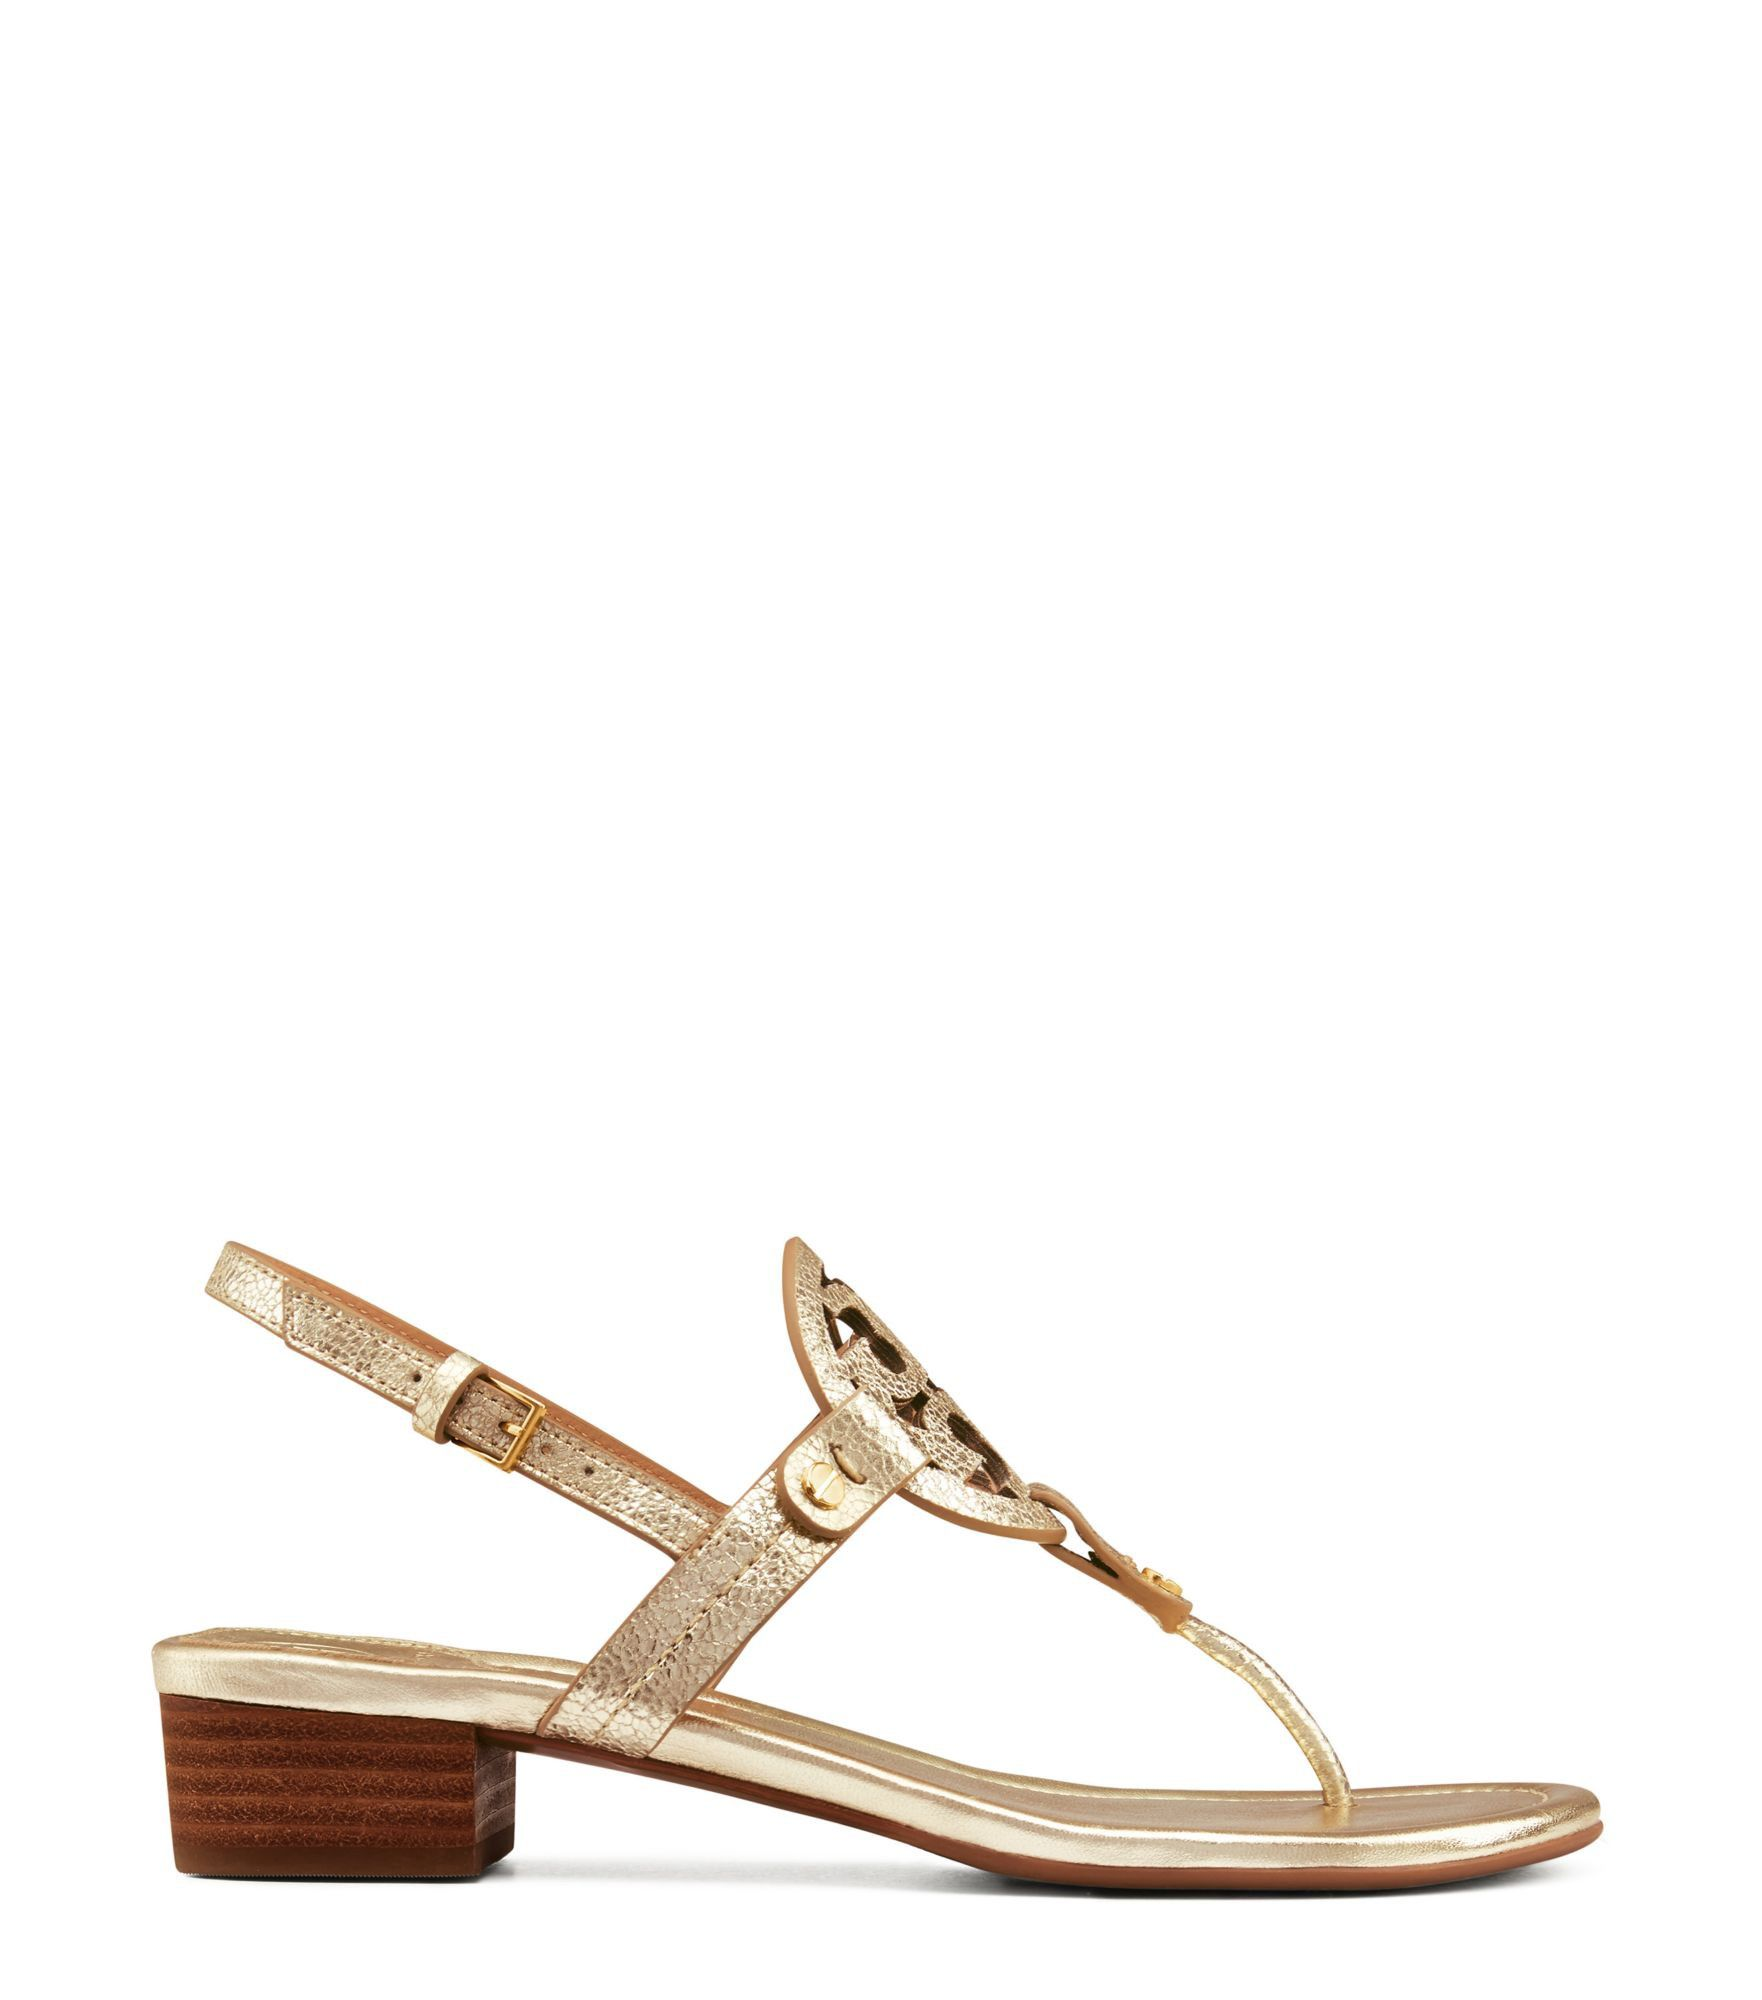 Visit Tory Burch to shop for Miller Low-heel Sandal, Metallic Leather and  more Womens Sandals. Find designer shoes, handbags, clothing & more of this  ...